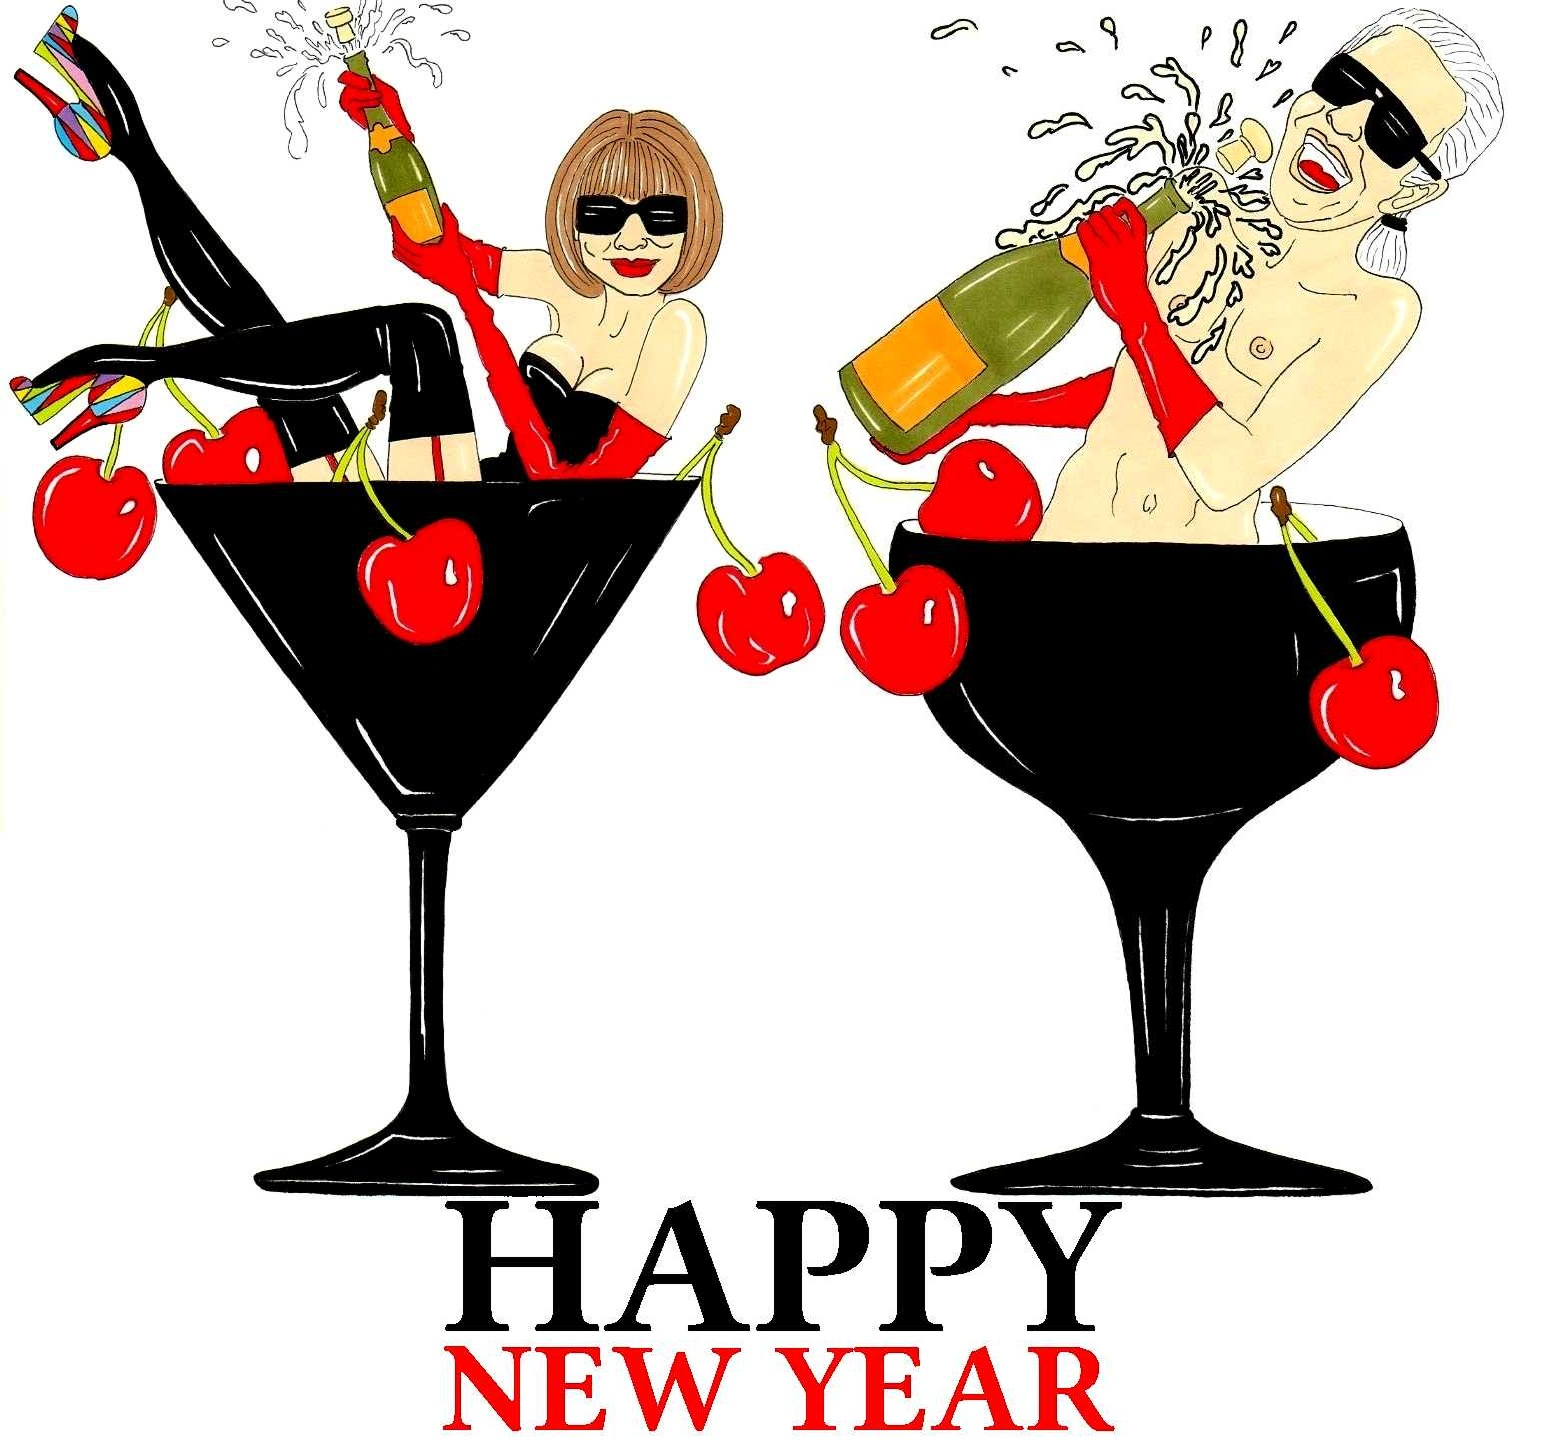 Is to happy new year humor happy new year humor happy new year to